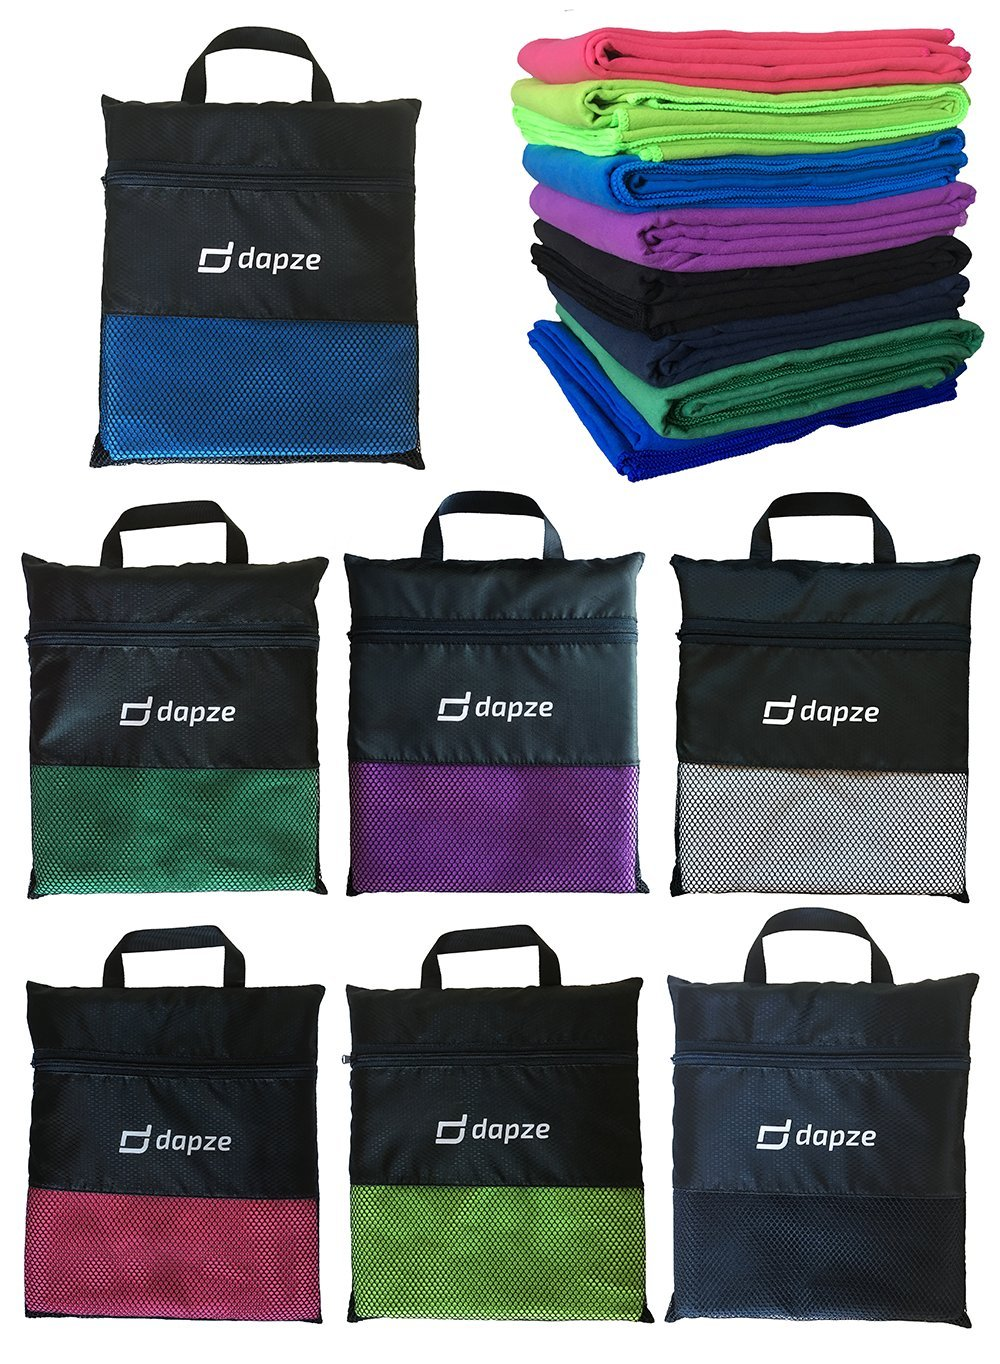 Microfibre Towel & Travel Towel with carry Bag - ultra-absorbent light & soft - Perfect for sports, fitness, outdoors, travel, beach, gym, yoga, pilates, bikram, swim, camping, hiking, backpacking, holidays and home. 10 colors (Pink)